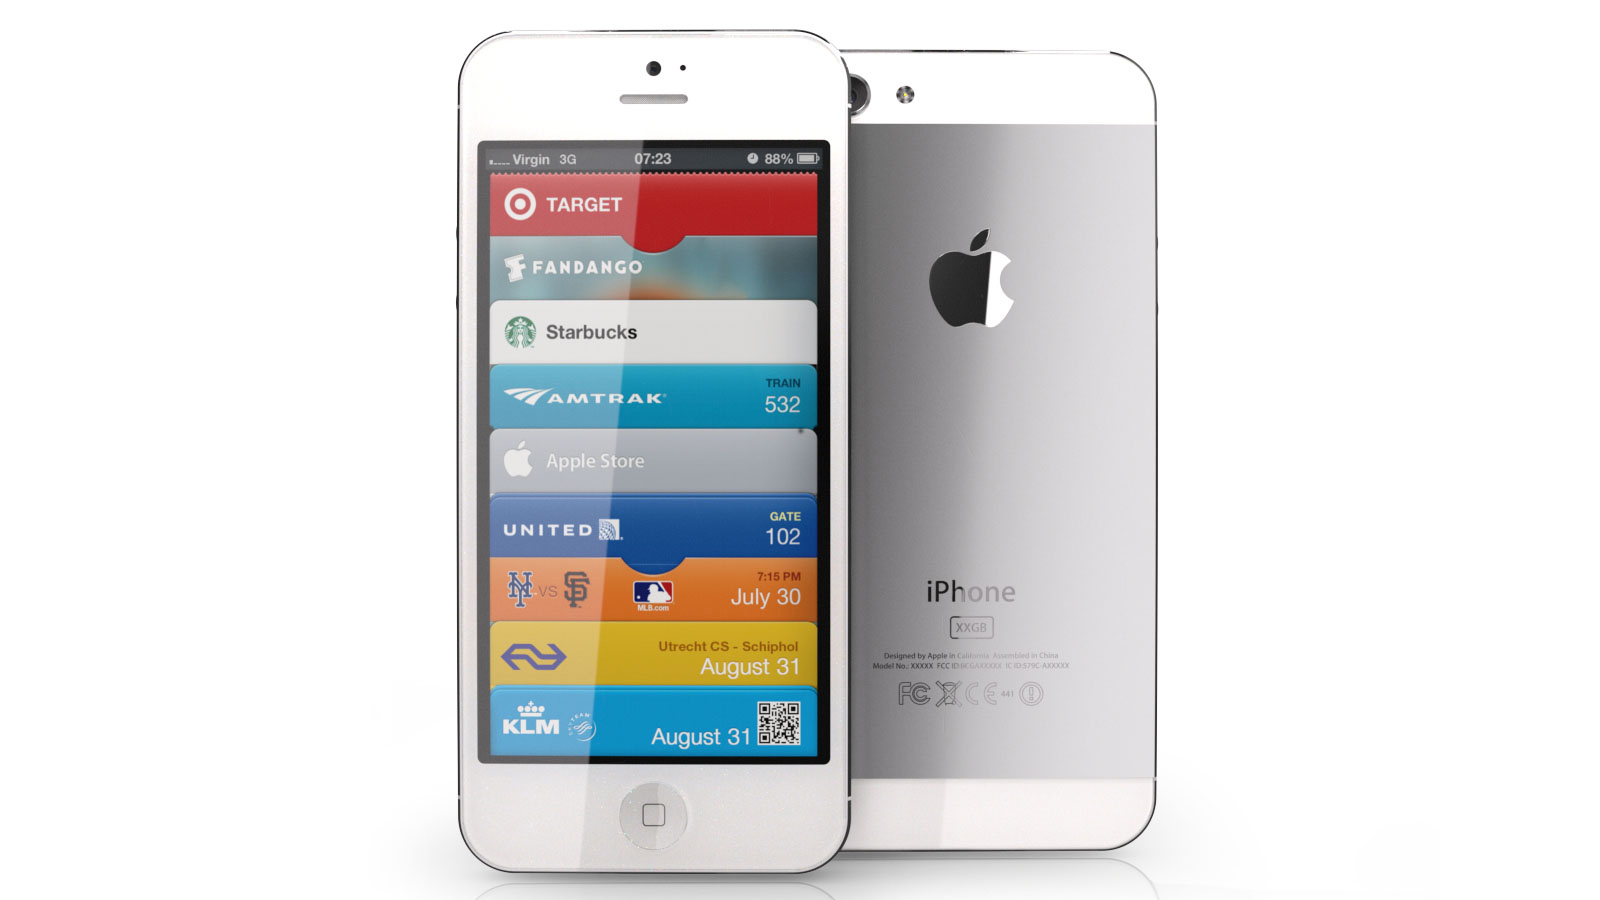 iPhone rendered image